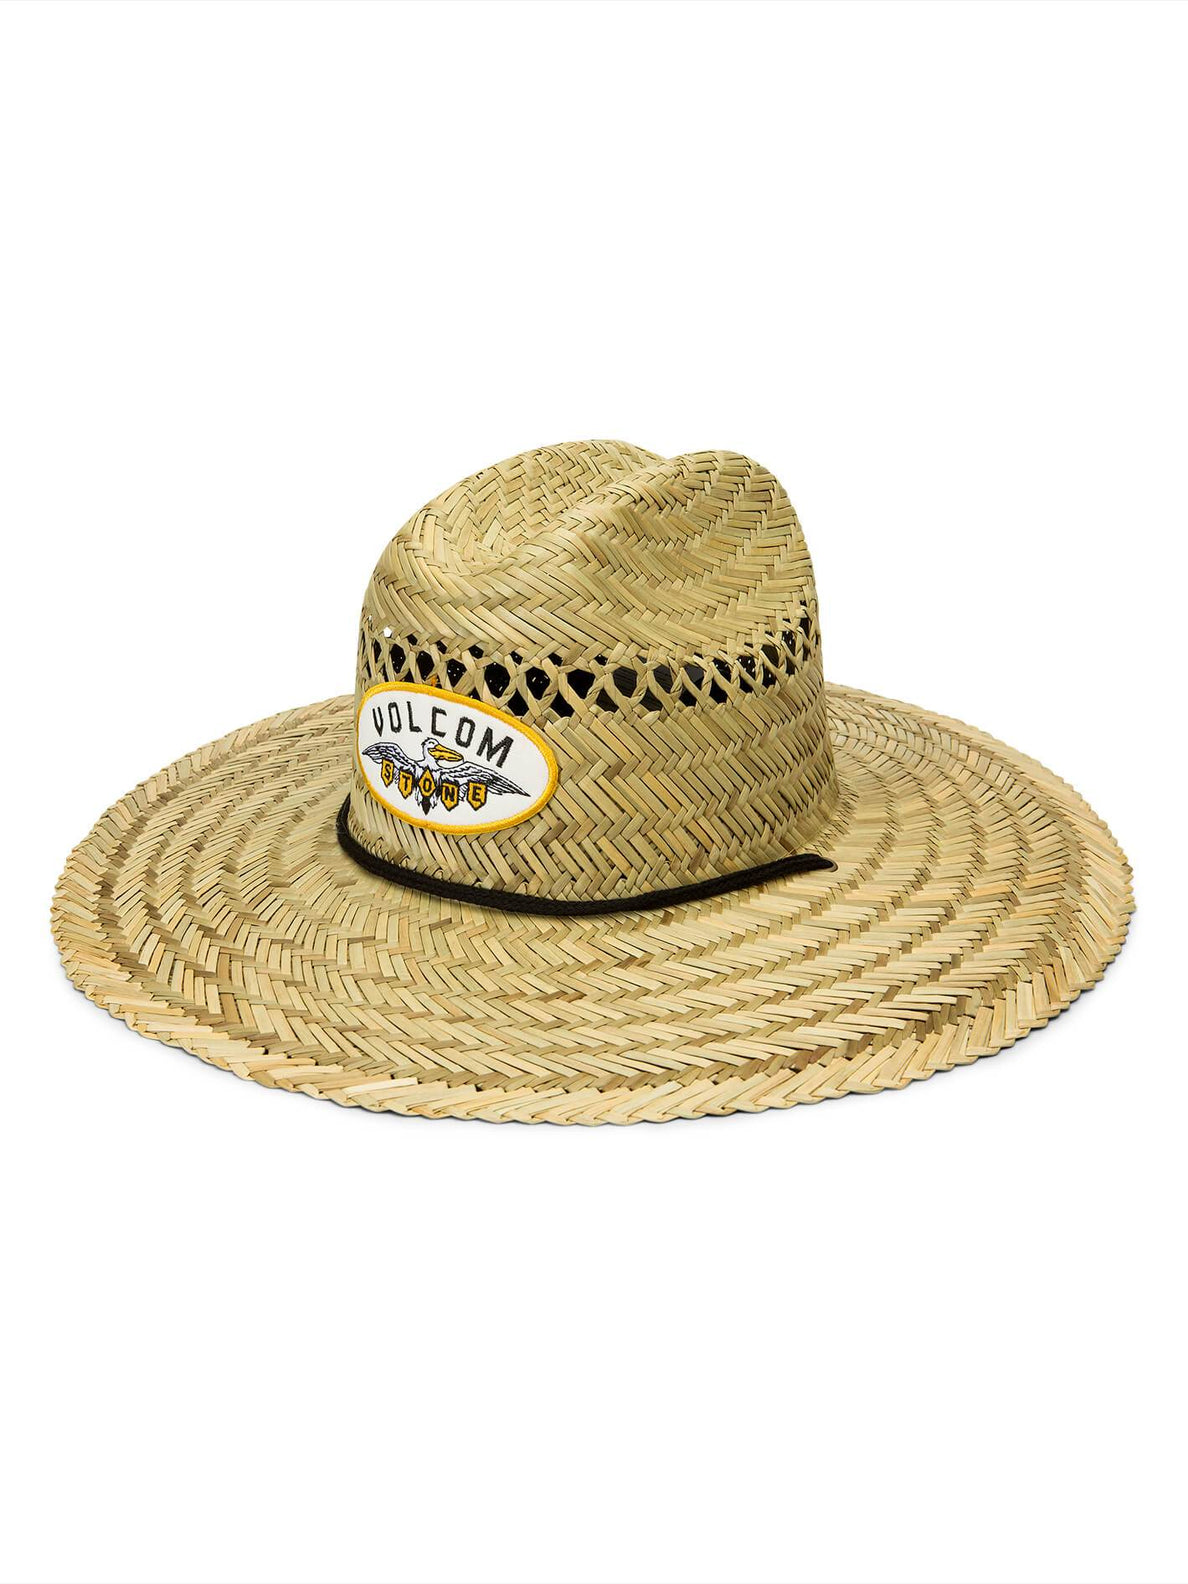 Hellican Straw Hat In Natural, Front View